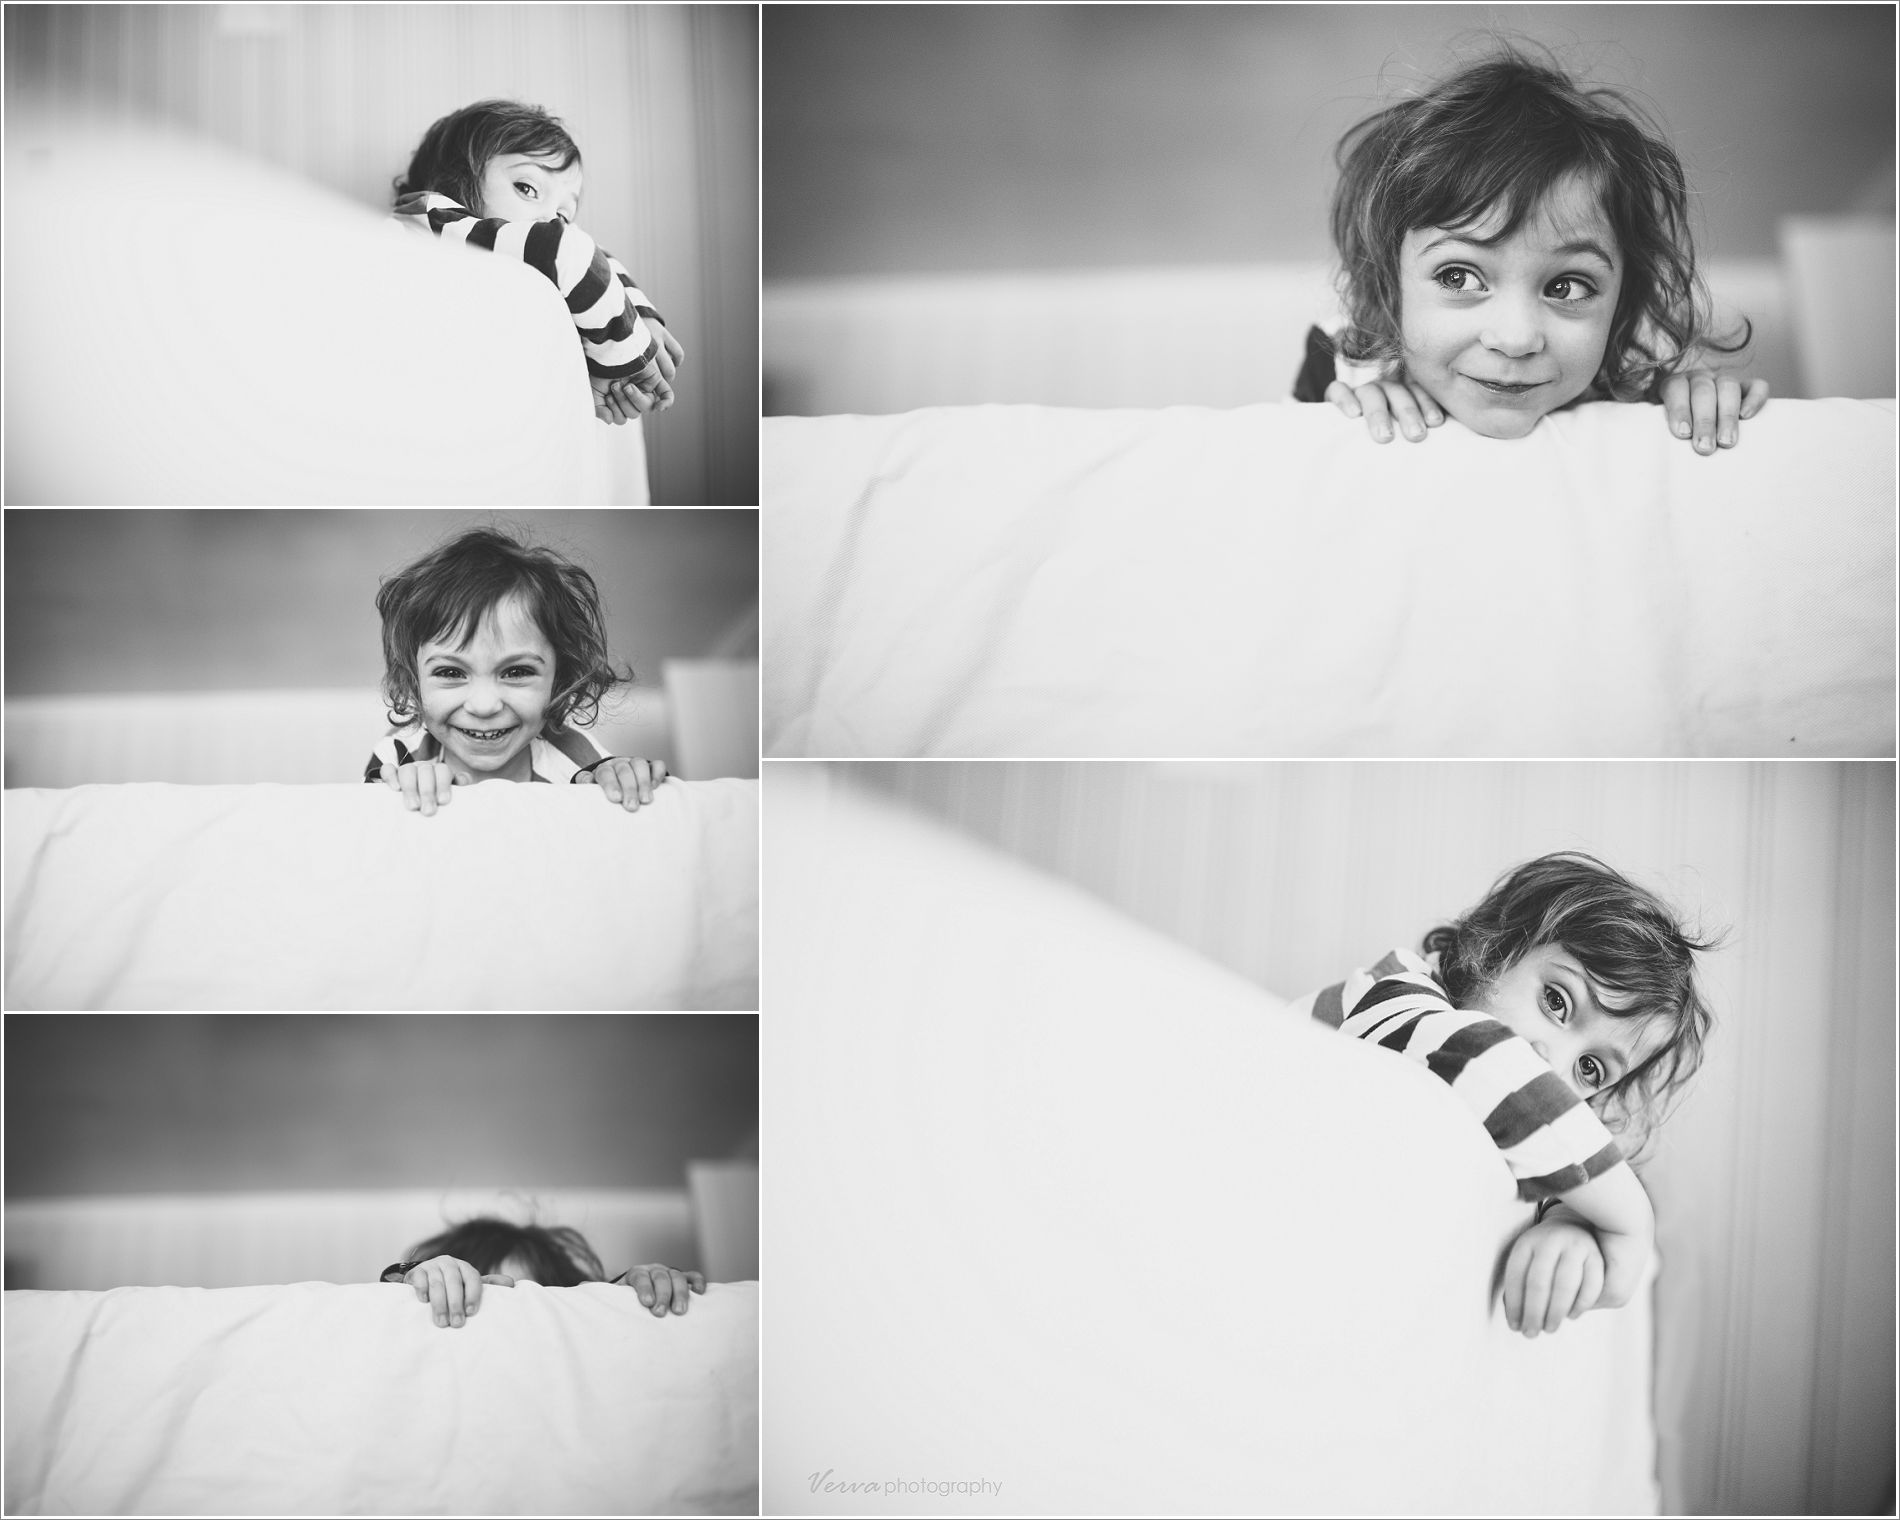 black and white portraits by verva photography